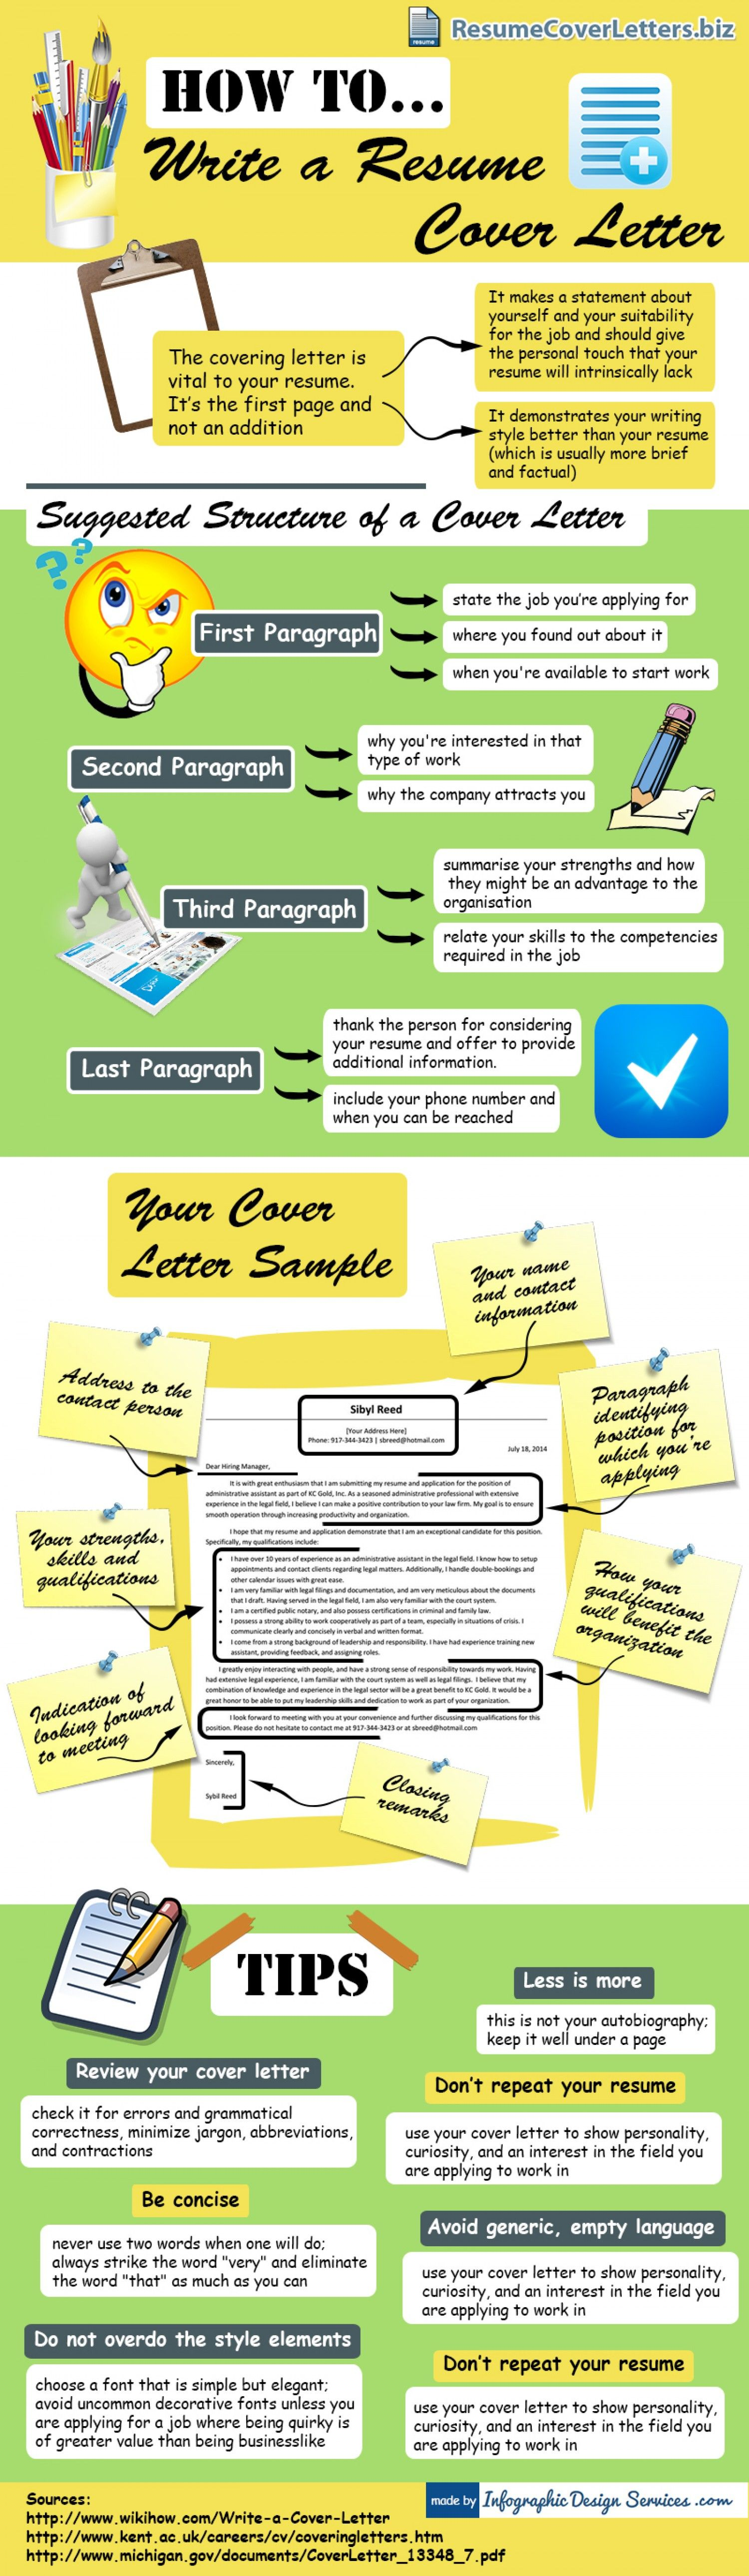 Tips For A Perfect Resume Resume Cover Letter Writing Tips Infographic Useful